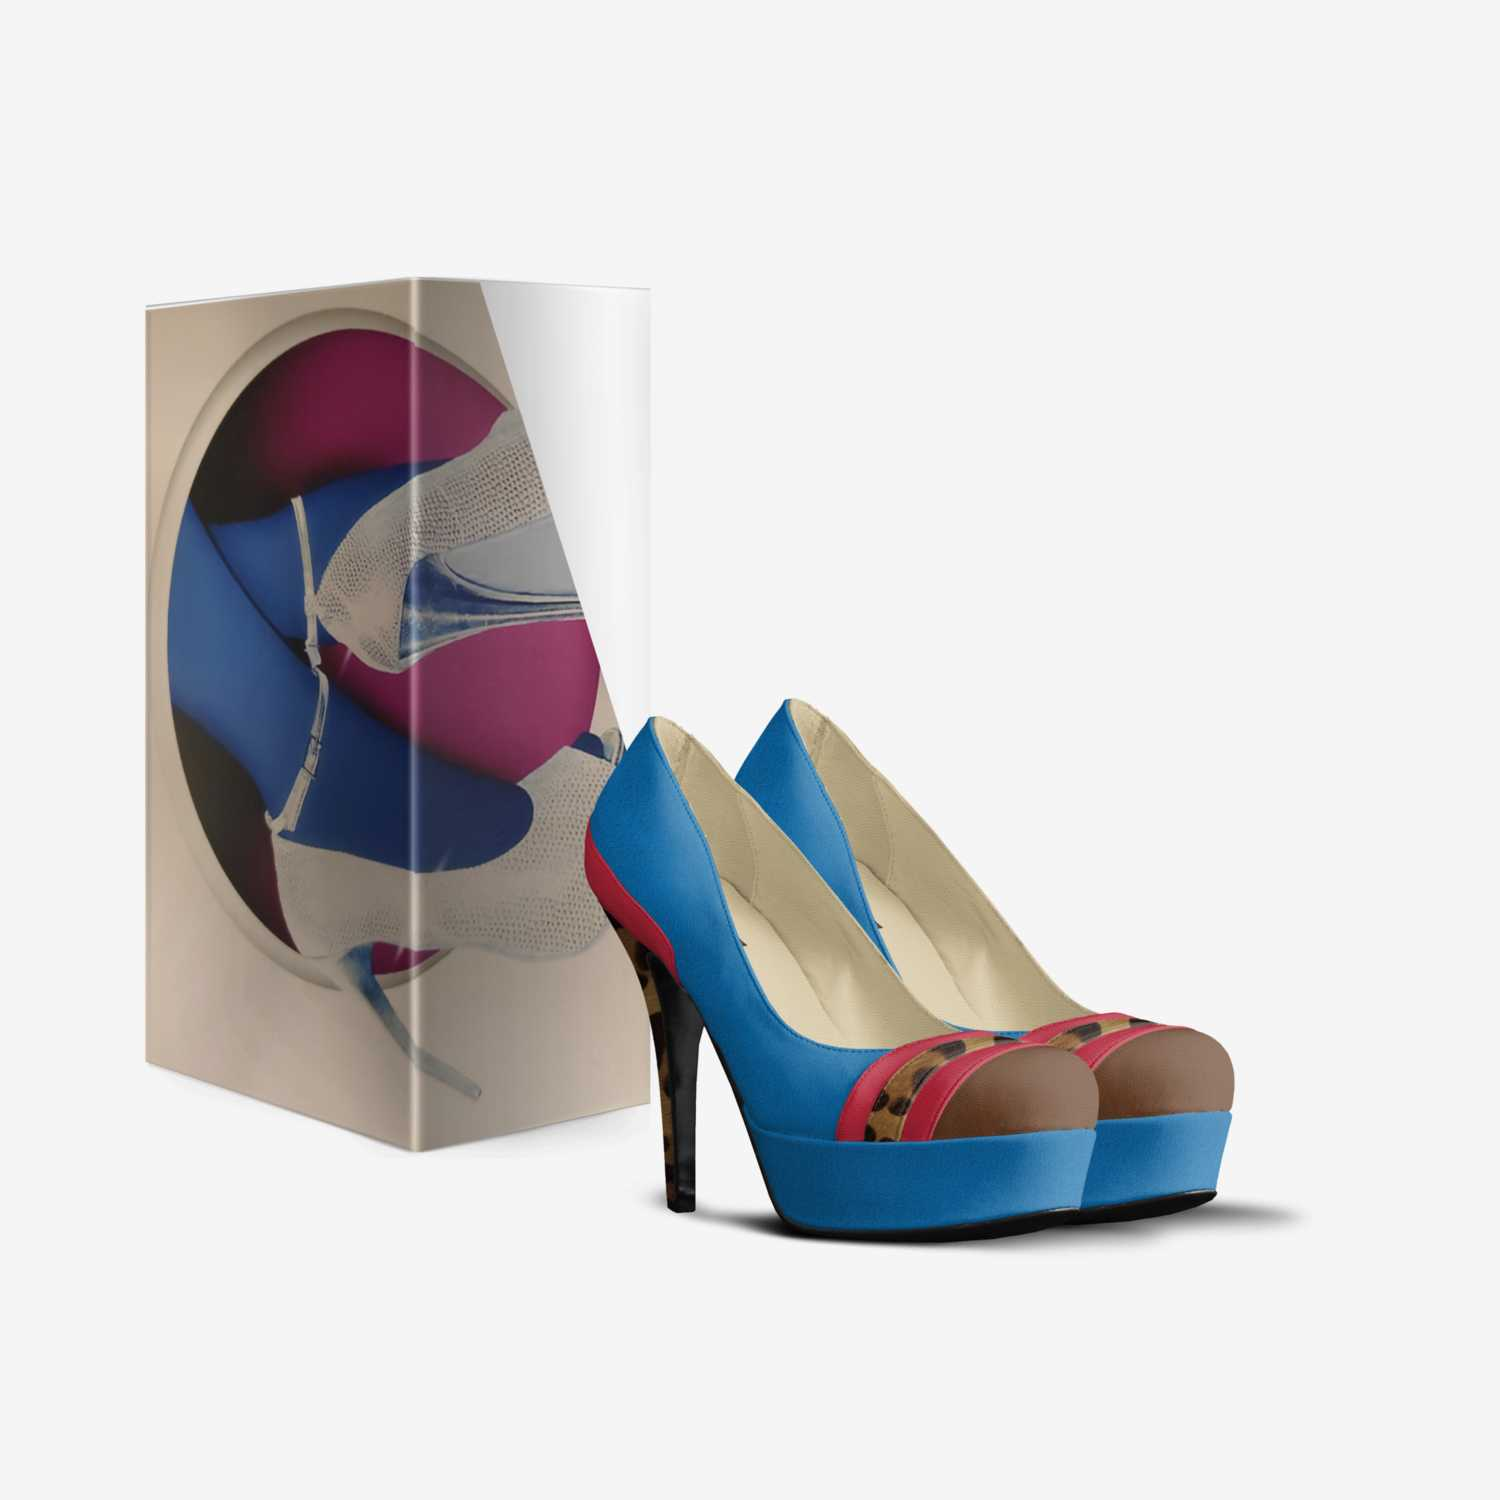 TWO STEPS custom made in Italy shoes by Sherry Matchett | Box view